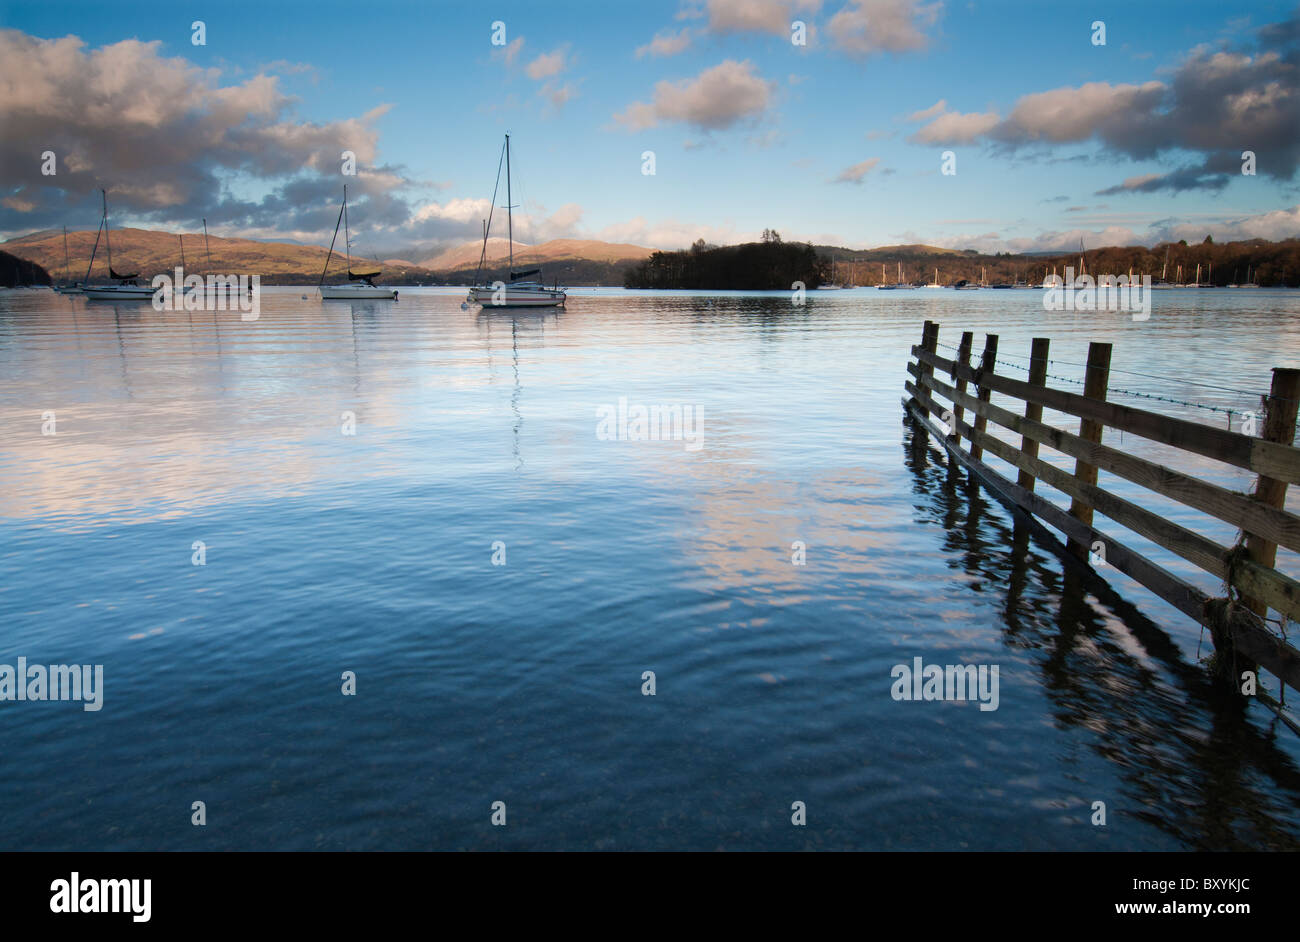 Evening light on a tranquil Lake Windermere in the Lake District, Cumbria England - Stock Image